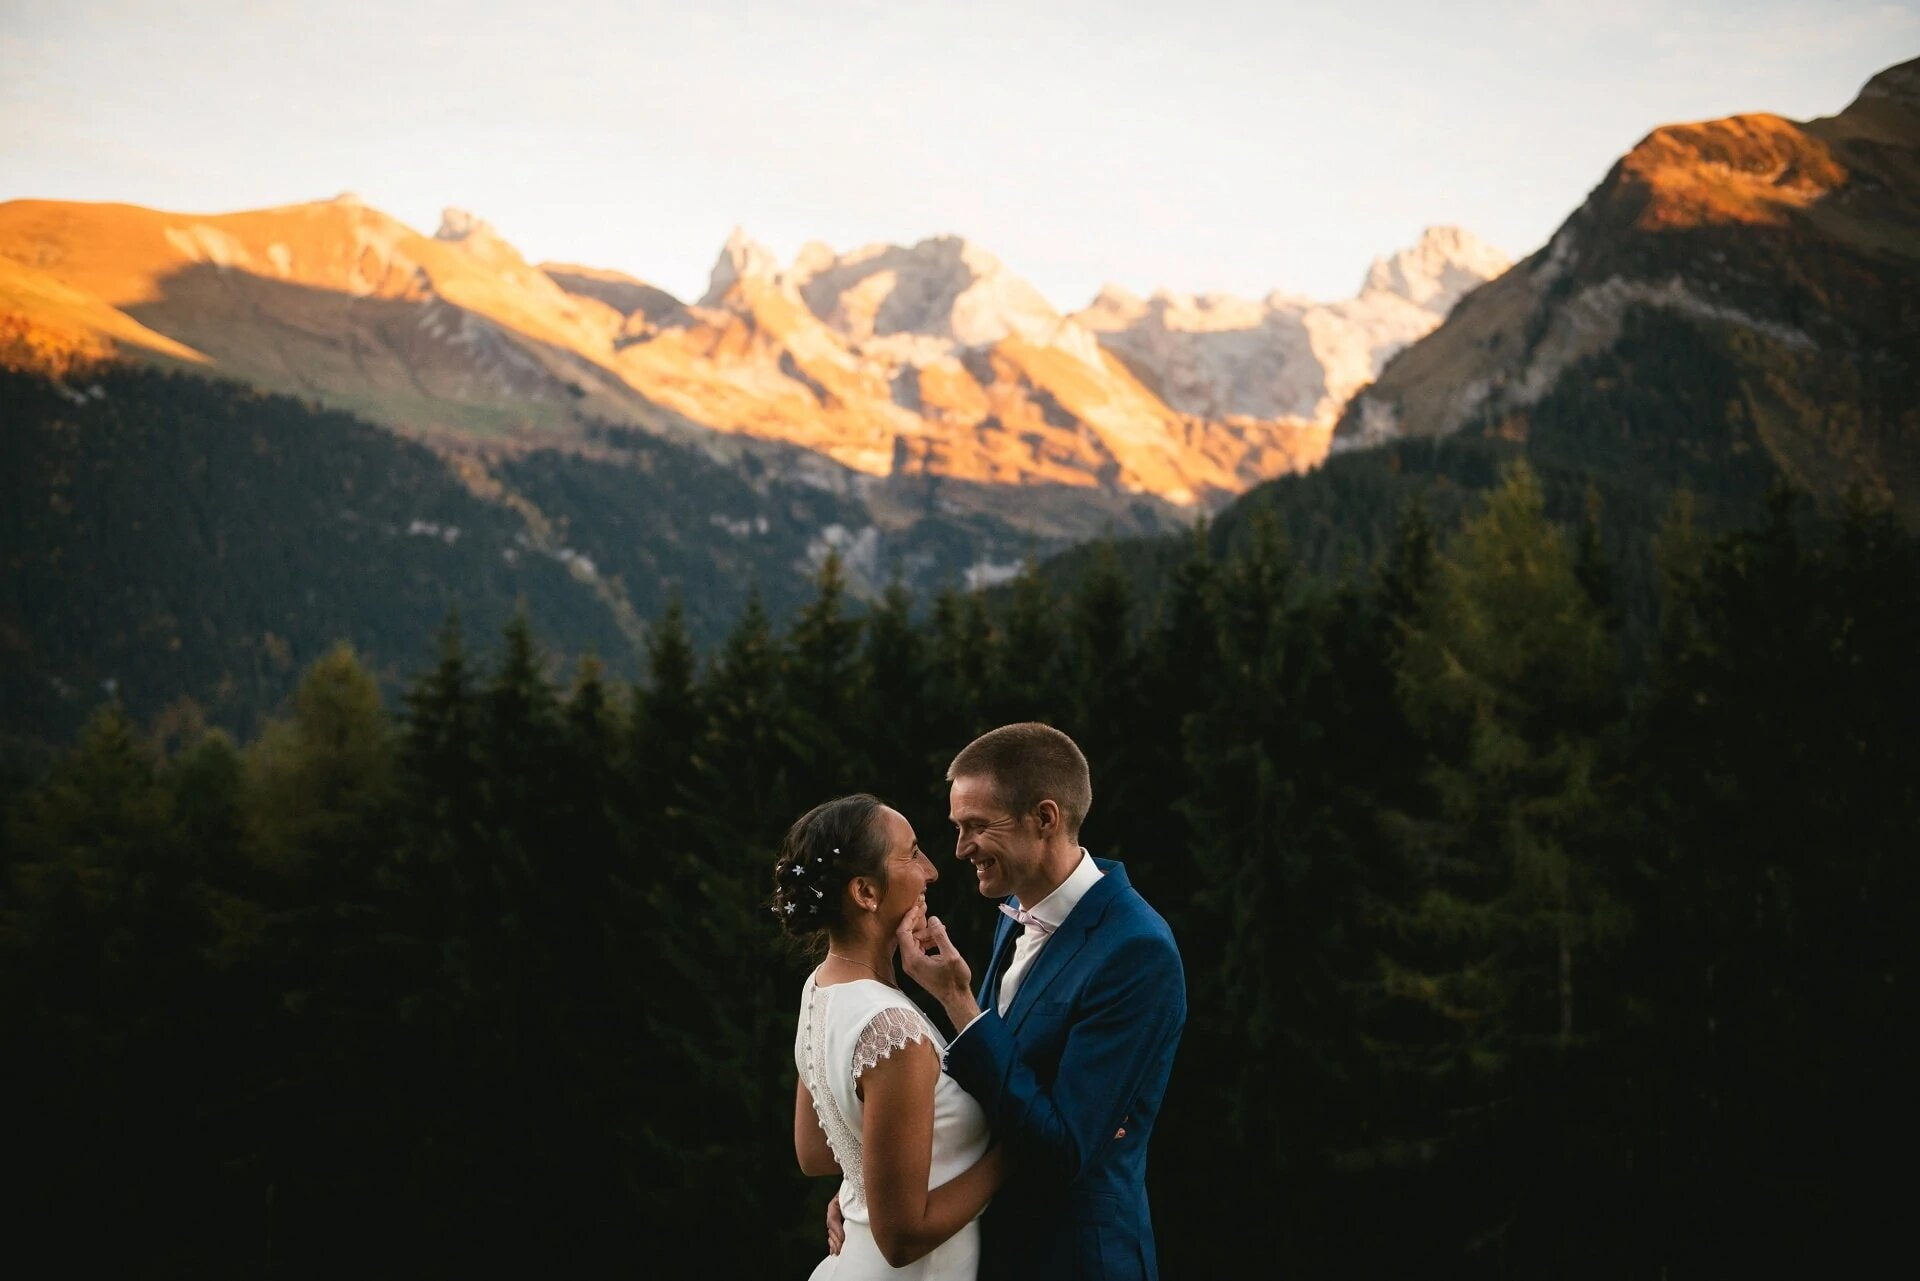 Elopement packages in New Zealand